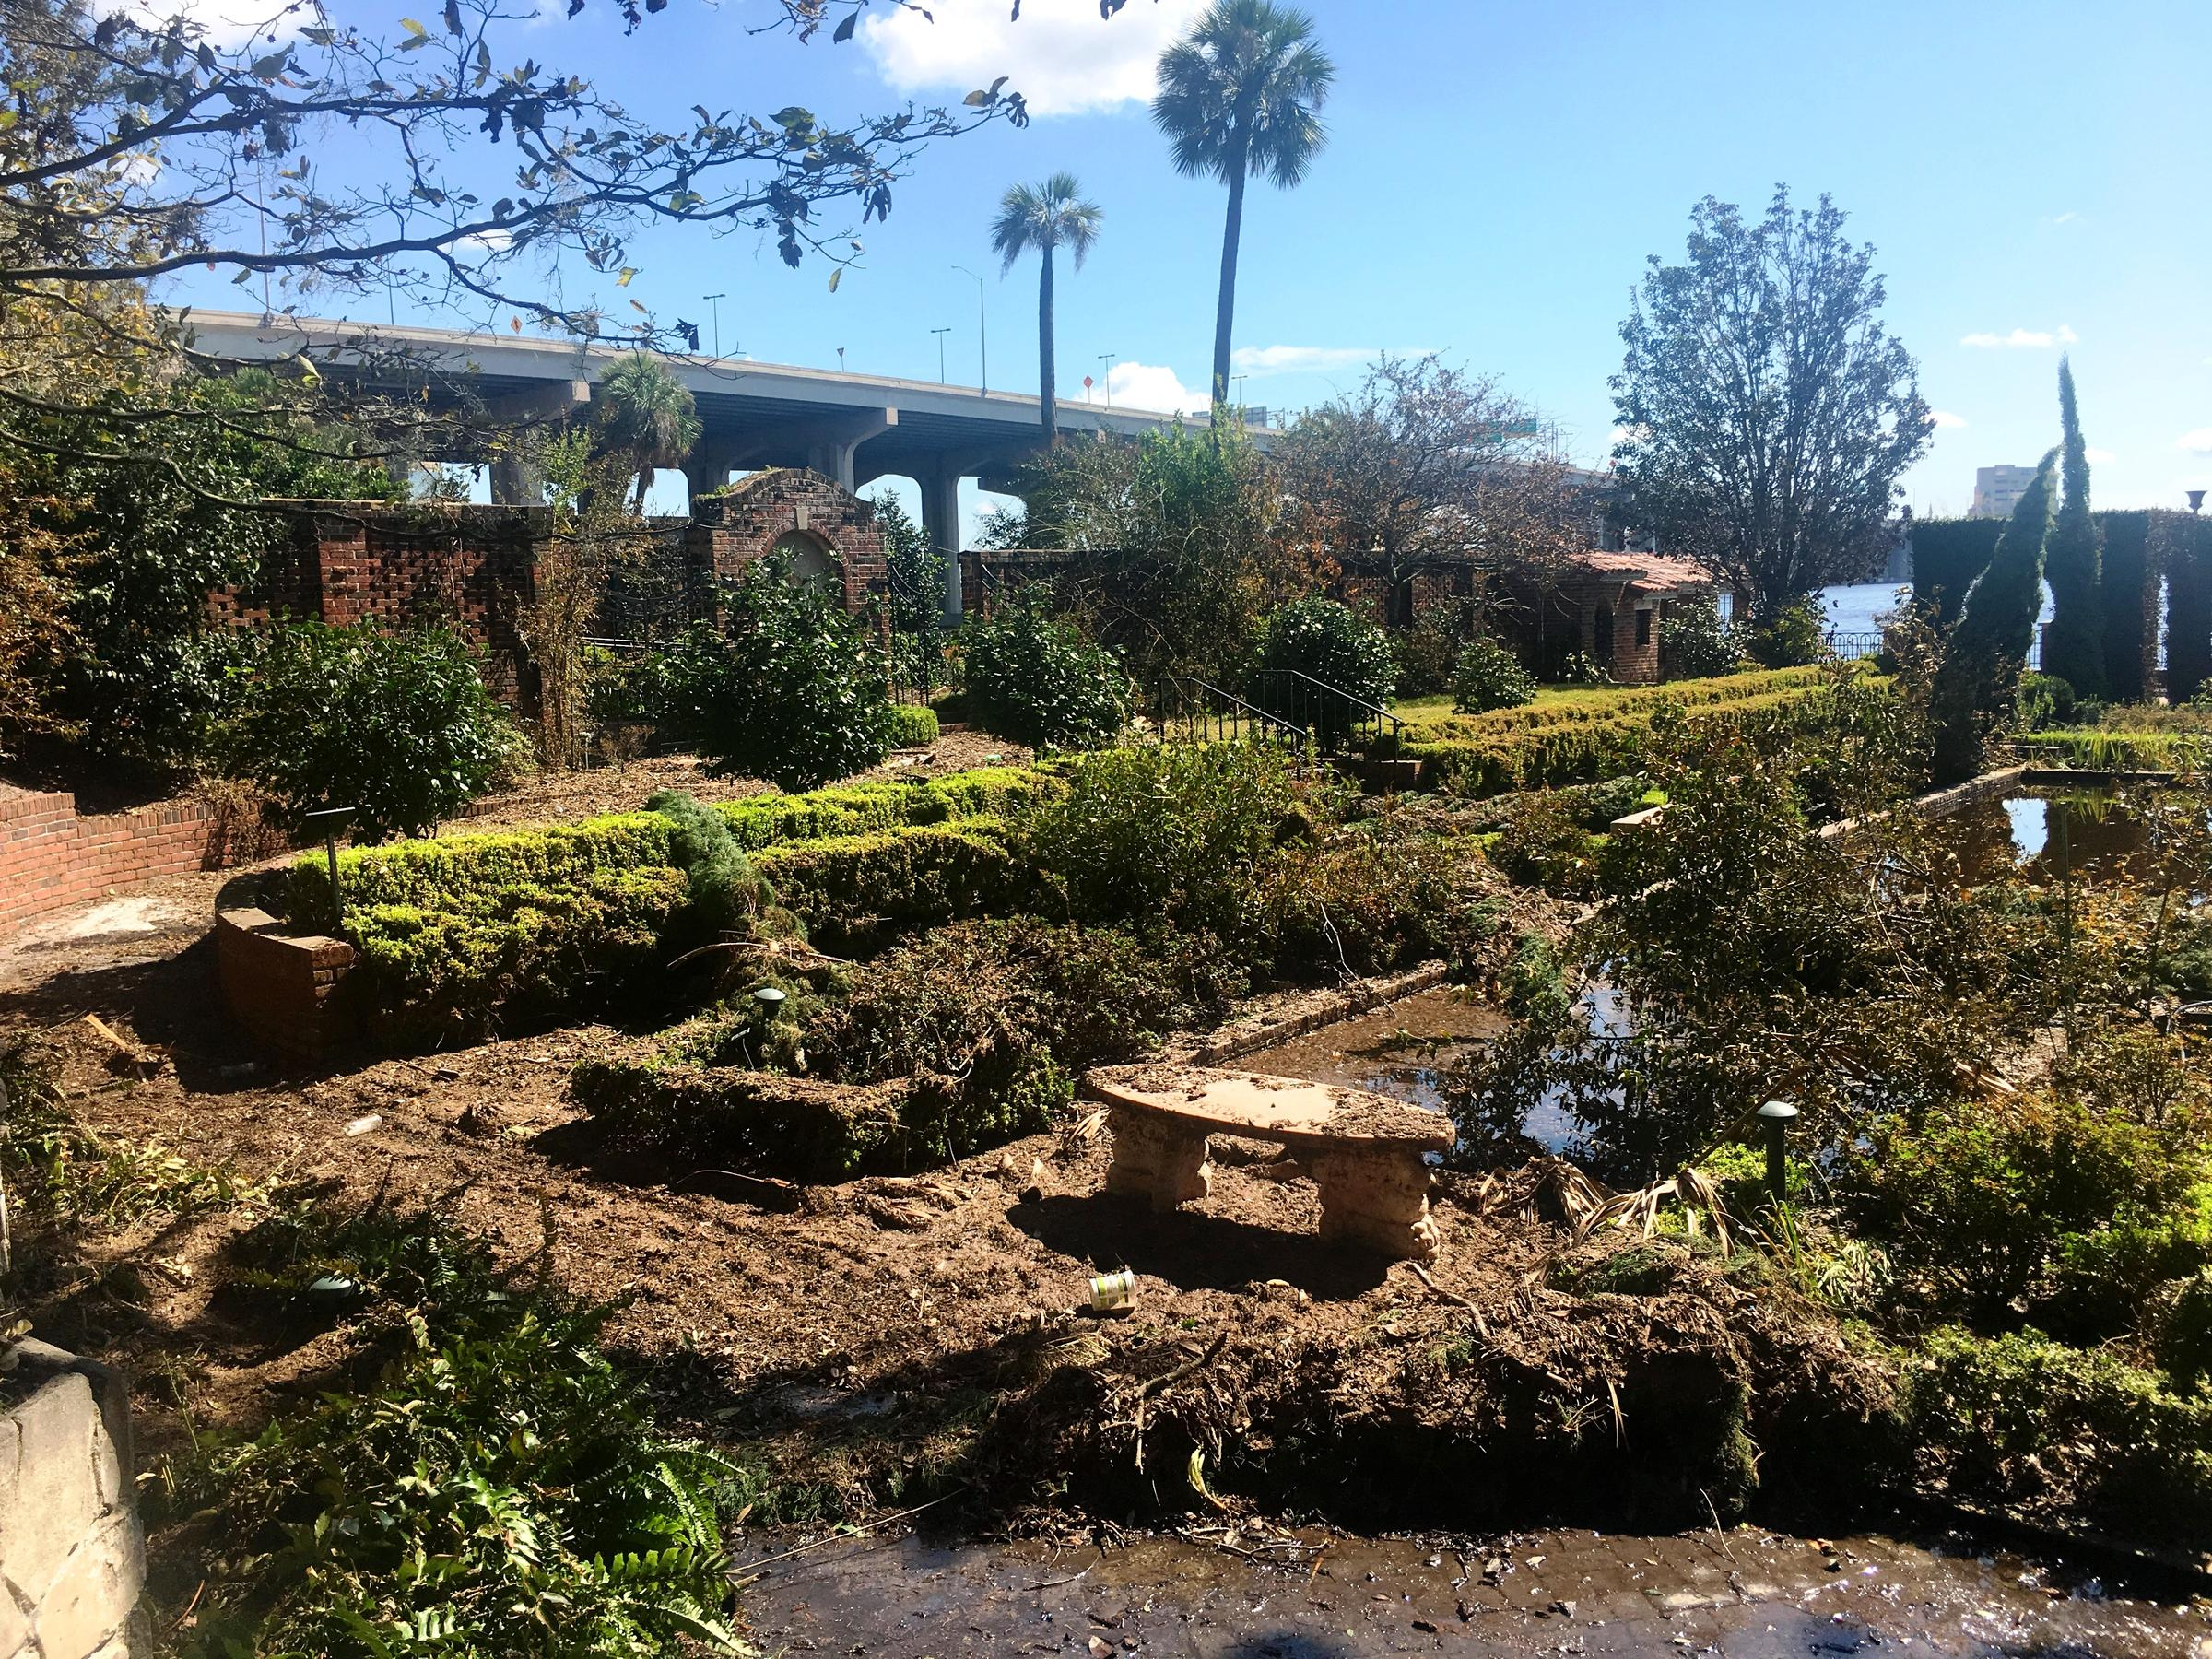 Wrecked Cummer Gardens Among Jacksonville Casualties Of Irma | WJCT NEWS